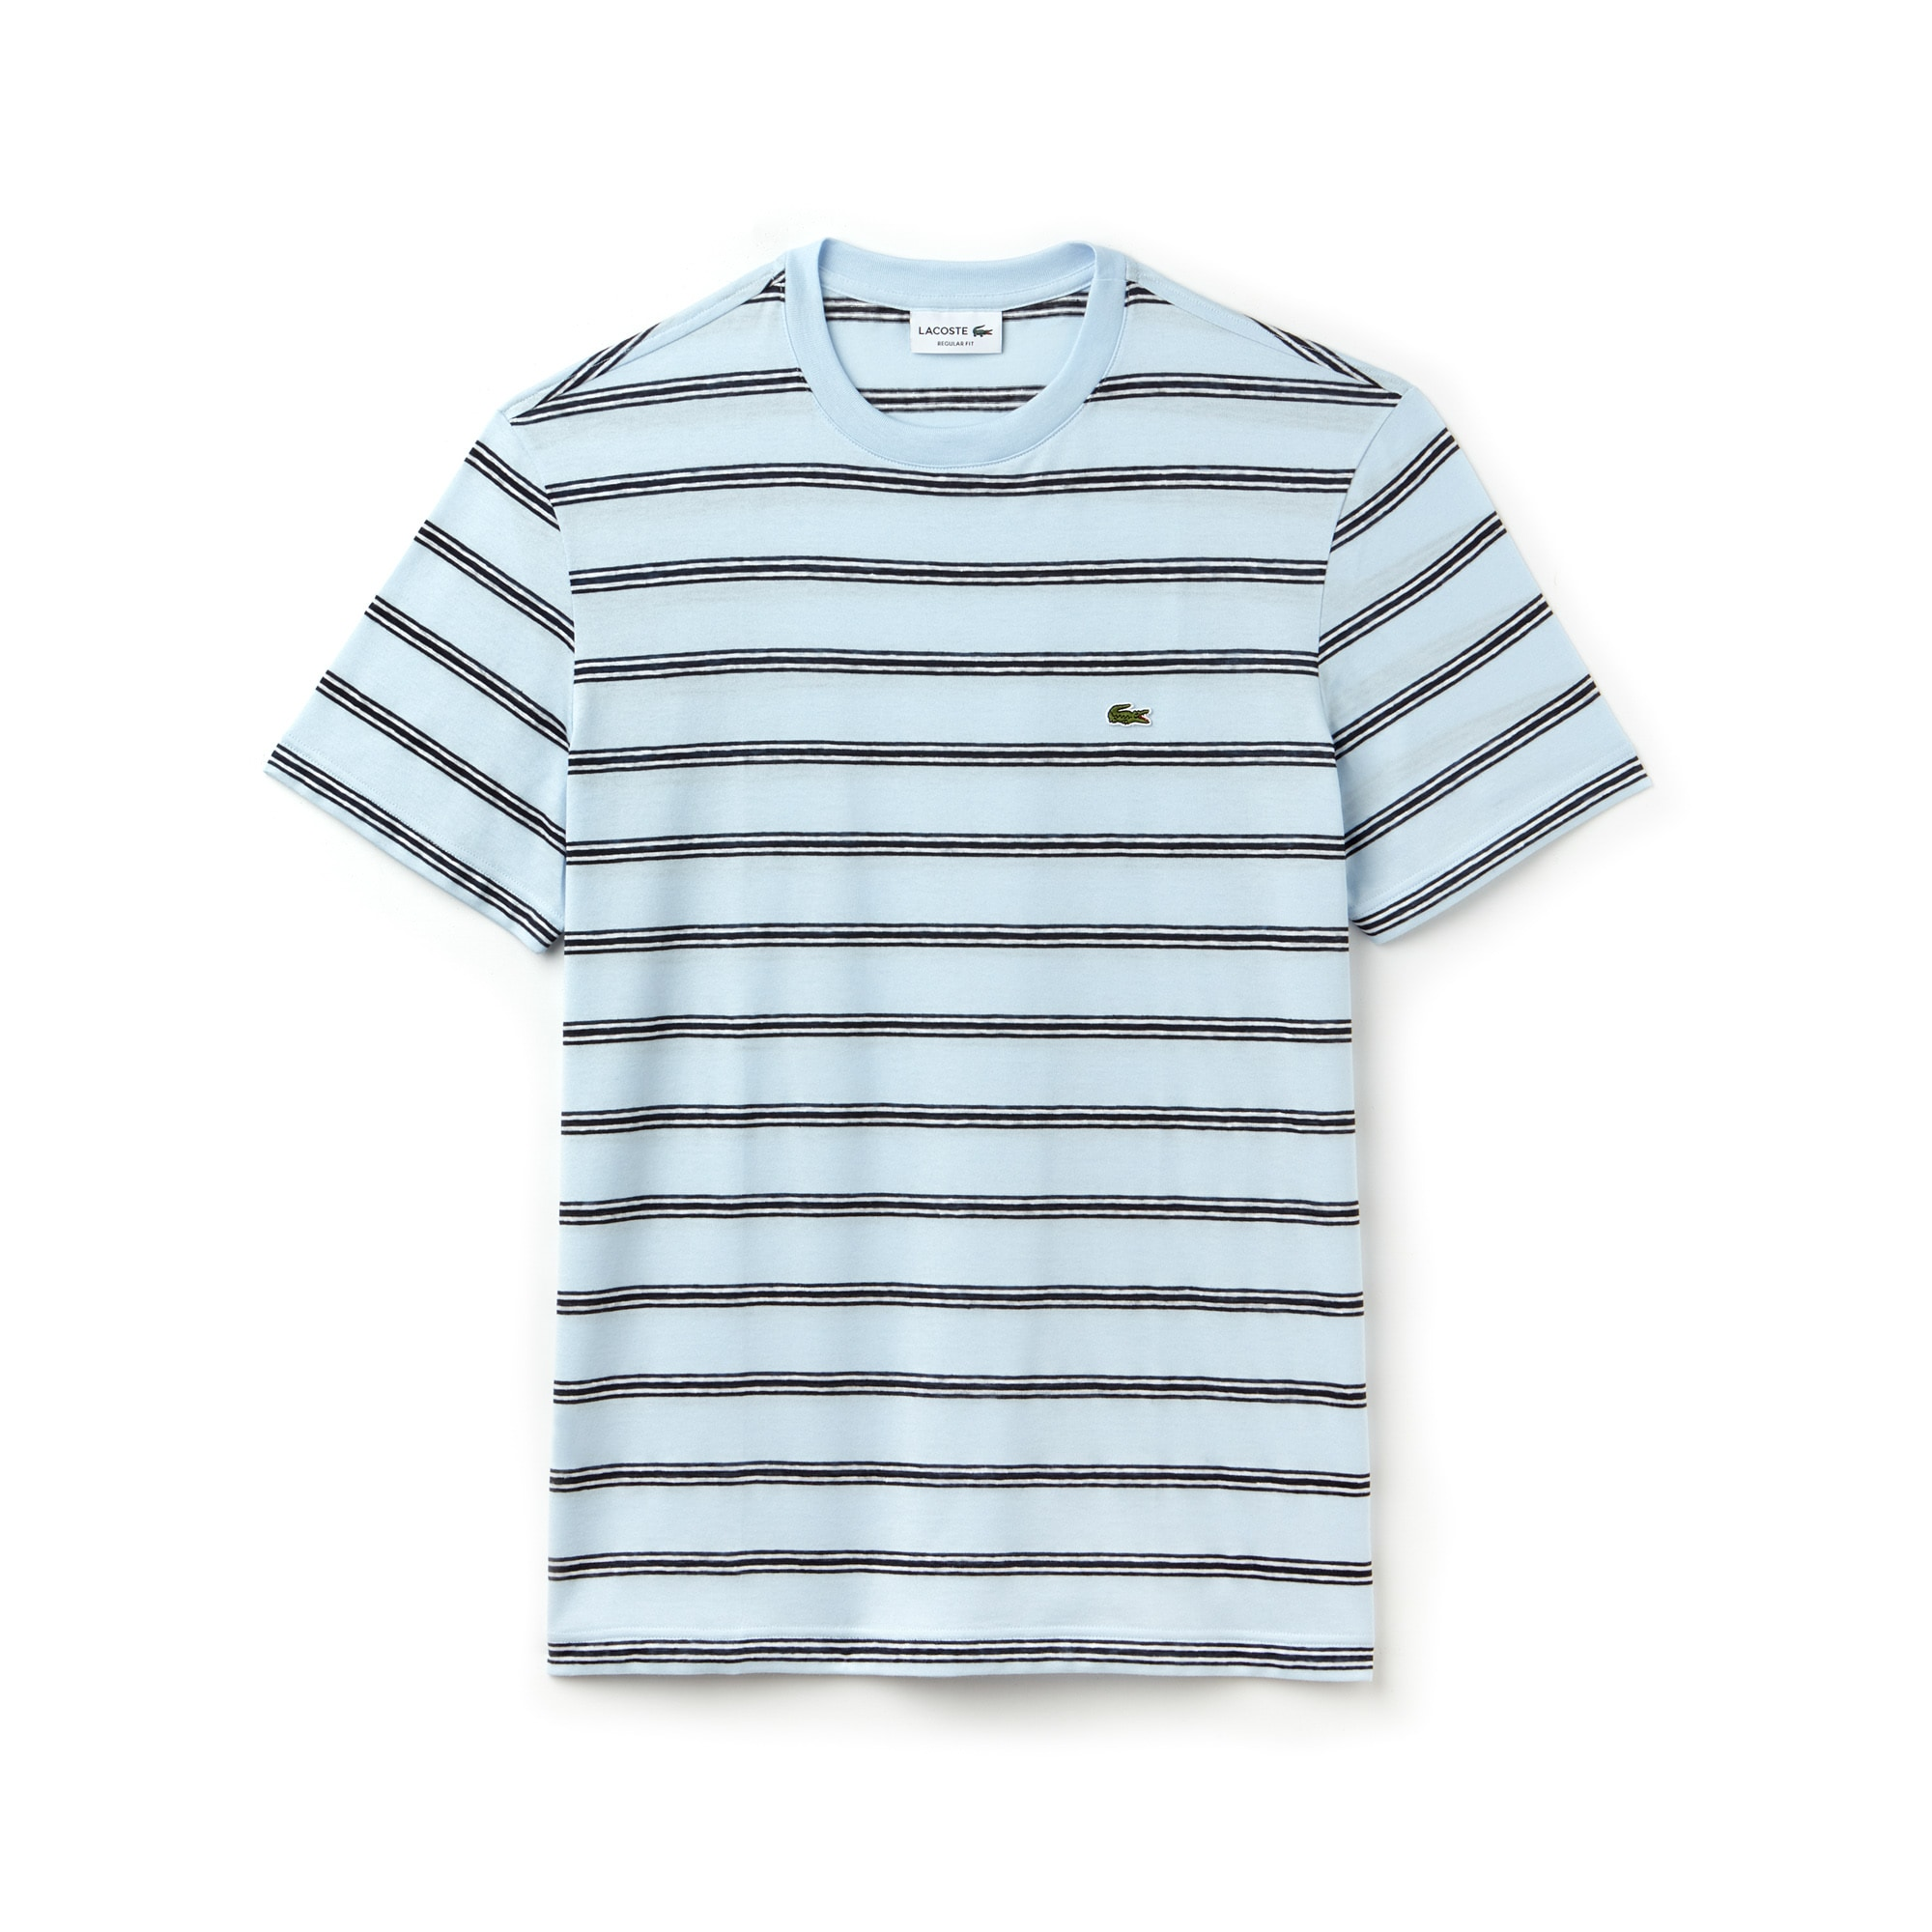 Men's Crew Neck Striped Cotton And Linen Jersey T-shirt